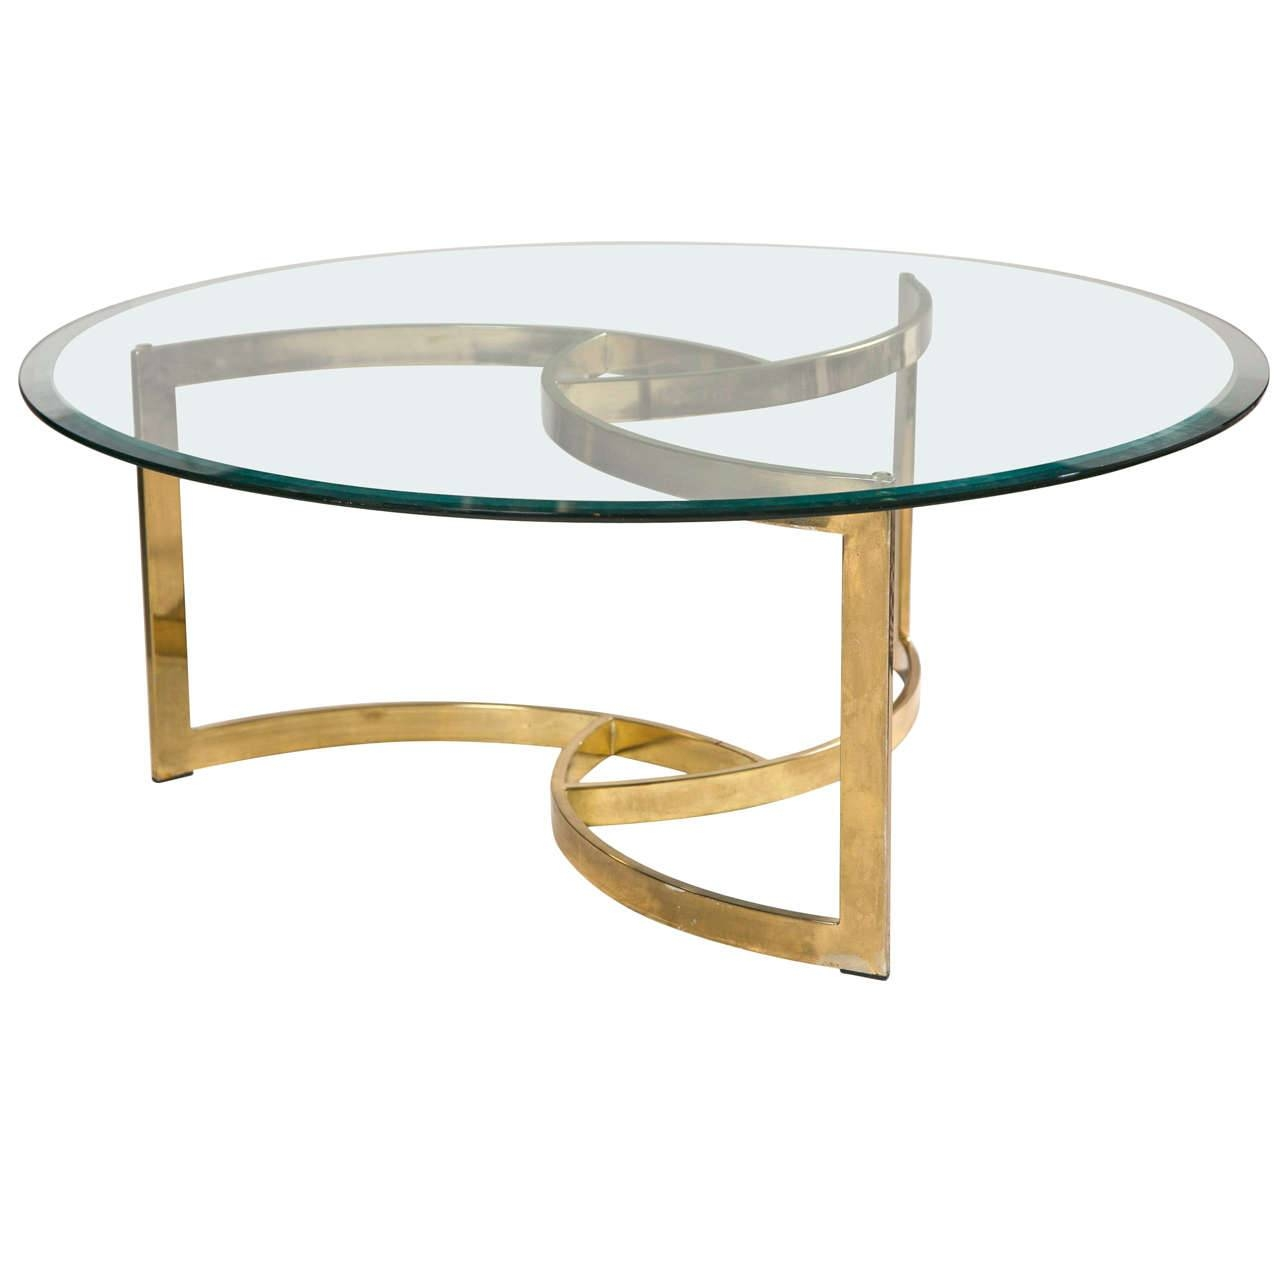 Table Bases For Glass Tops. Irvine Dining Table Shown In 96X40 pertaining to Metal Coffee Tables With Glass Top (Image 29 of 31)